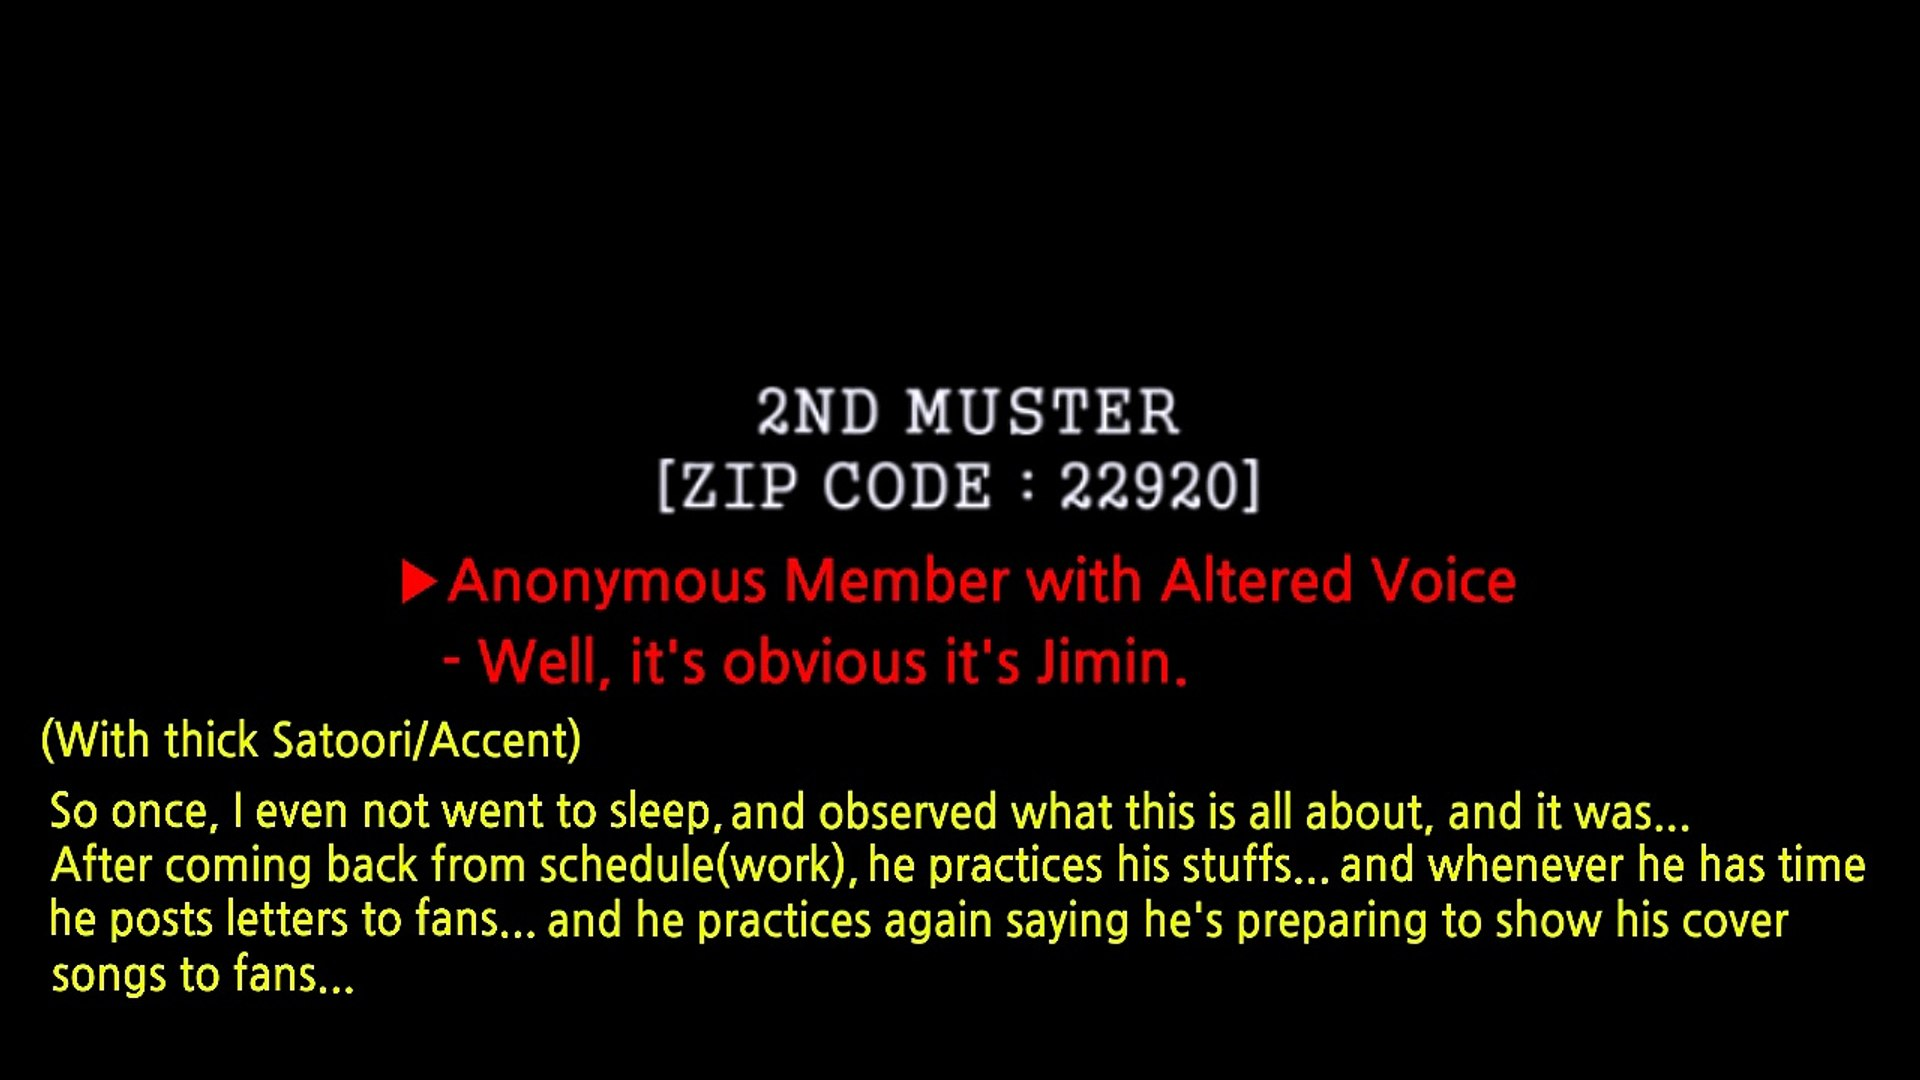 [ENG SUB] 160124 BTS 2ND MUSTER ANONYMOUS COMPLAINT LETTER JUNGKOOK/  Jungkooks Sleepwear